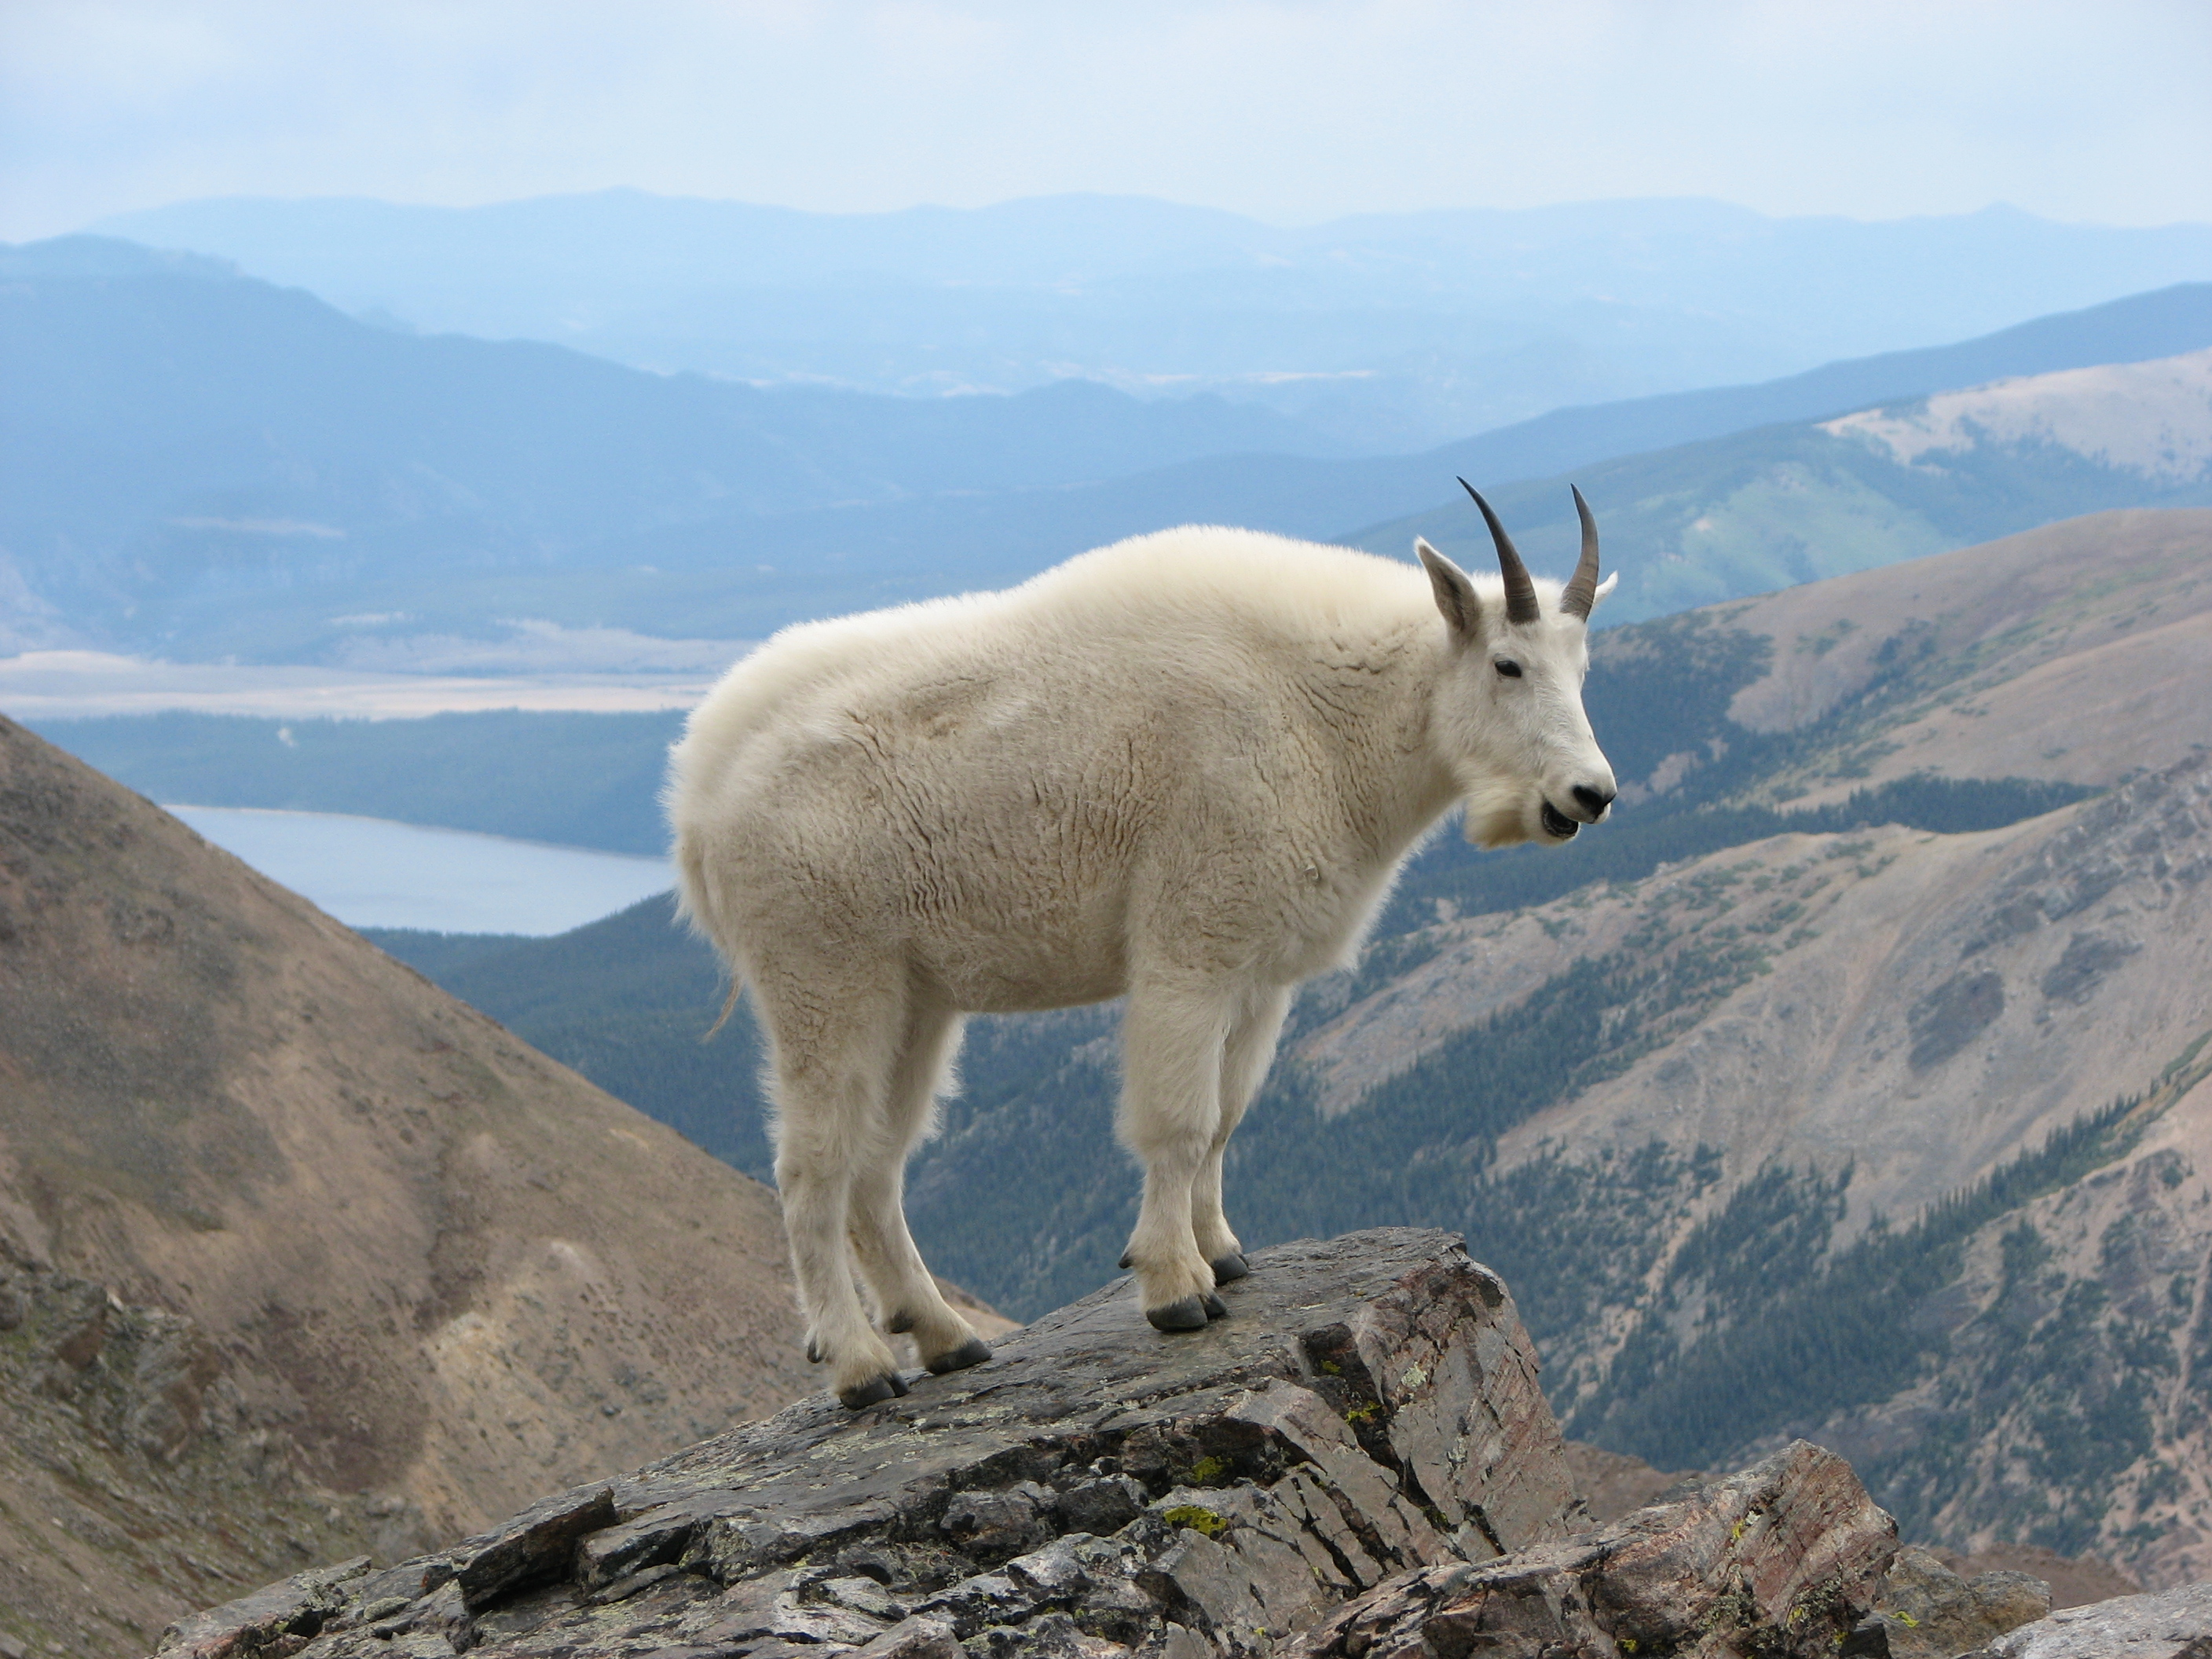 https://upload.wikimedia.org/wikipedia/commons/1/16/Mountain_Goat_Mount_Massive.JPG